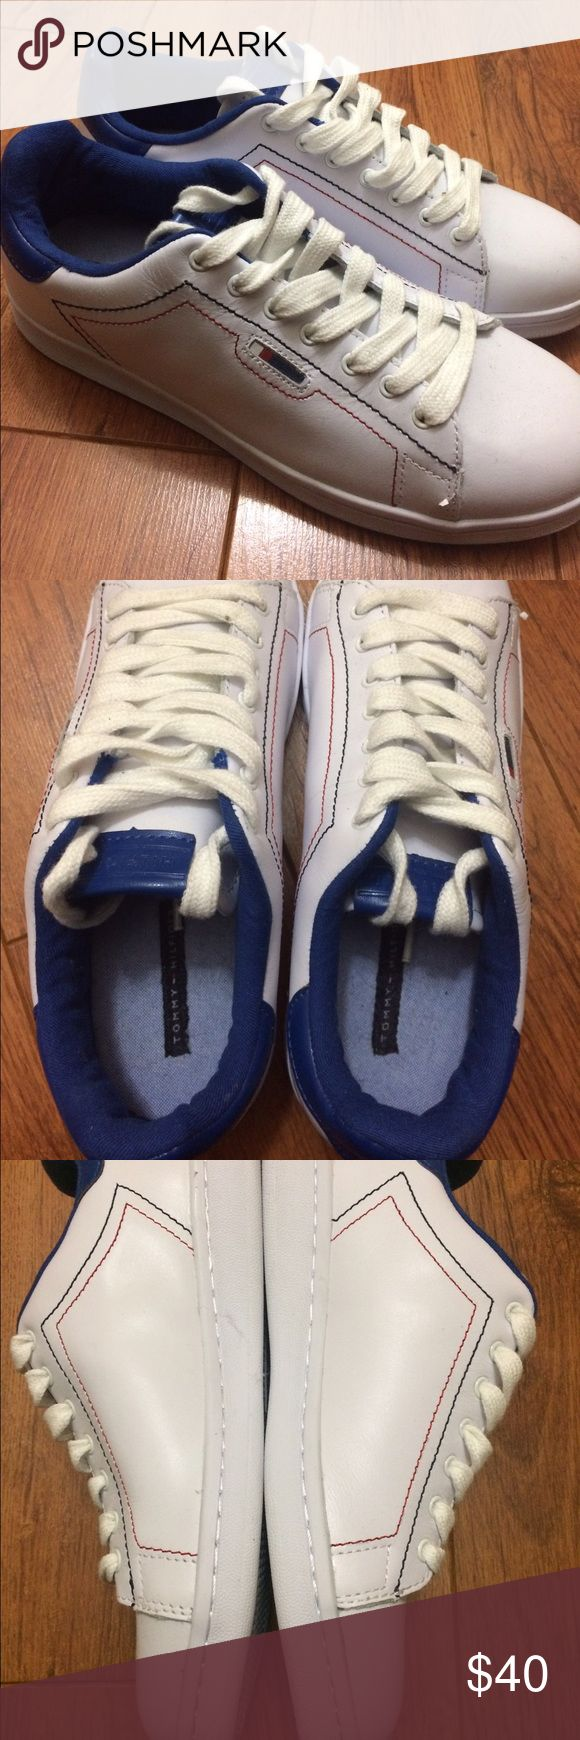 Tommy Hilfiger Sneakers Never been used Tommy Hilfiger shoes! Perfect for a casual wear! Tommy Hilfiger Shoes Sneakers